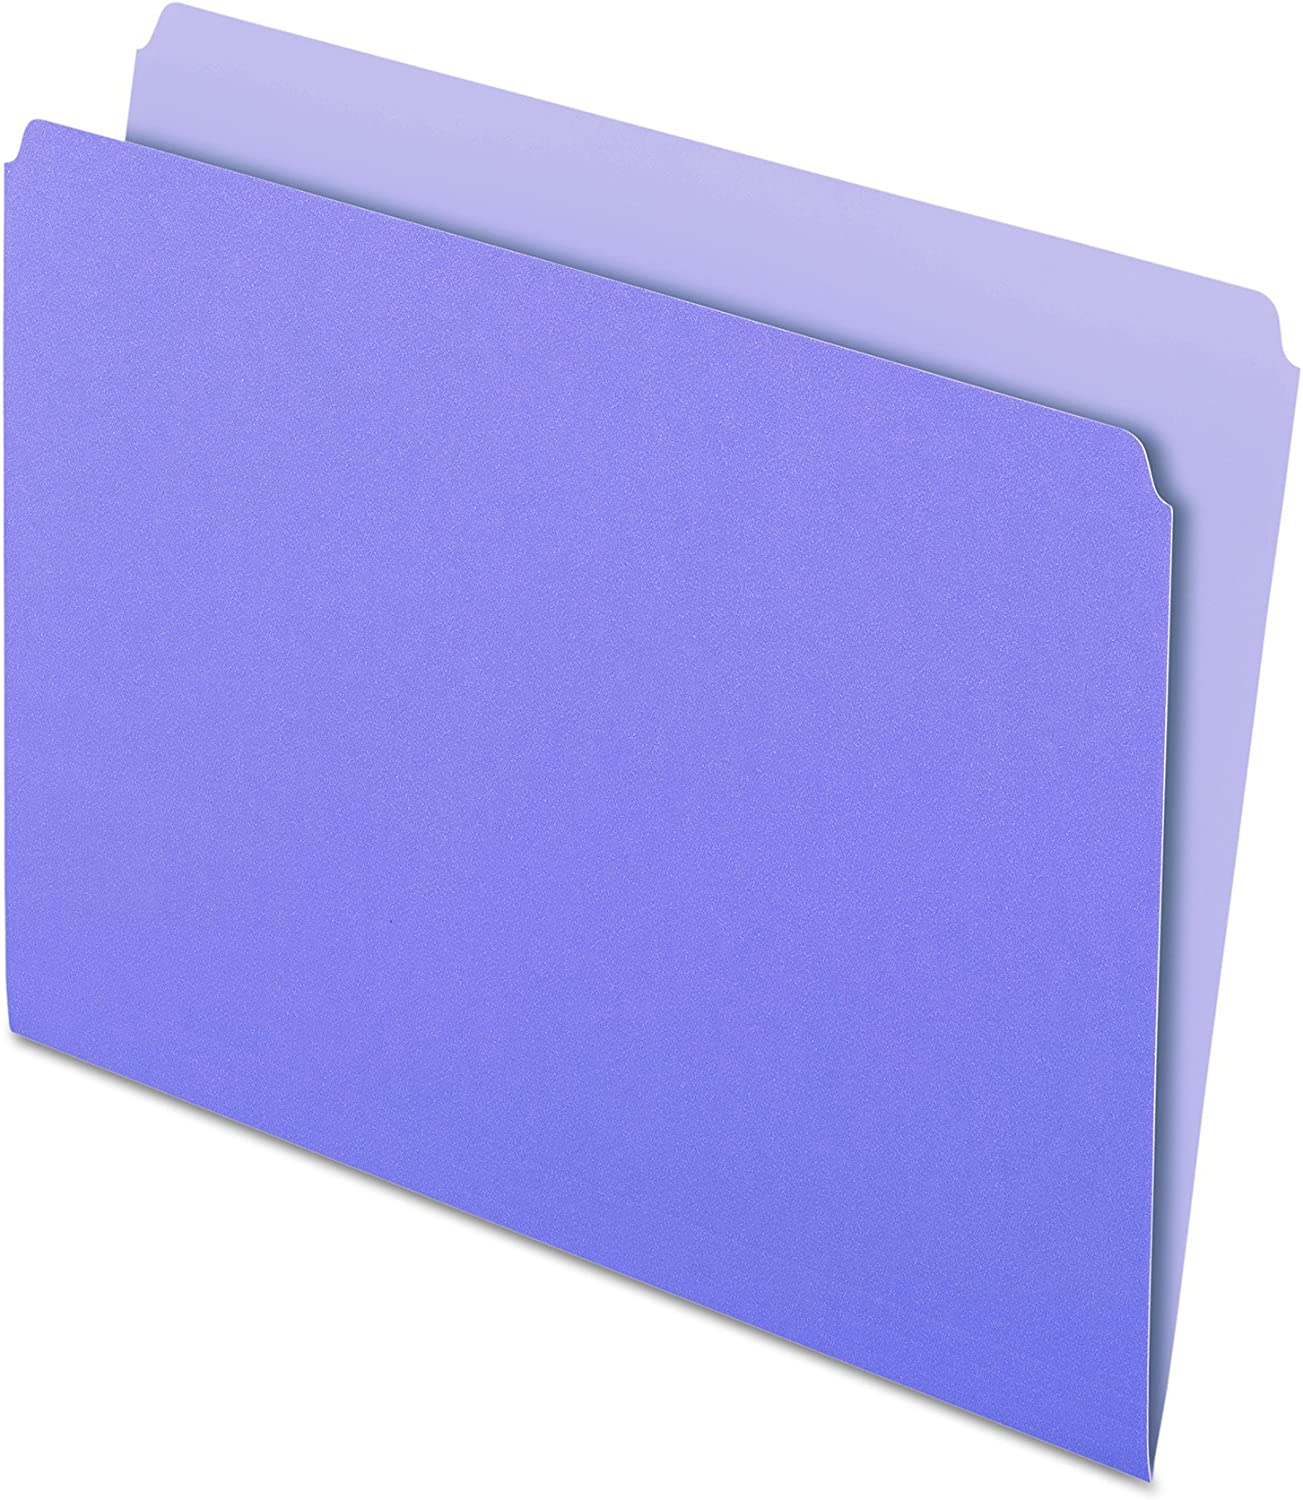 Pendaflex Two-Tone Color File Folders Lavender Letter Size Directly managed Special price for a limited time store St